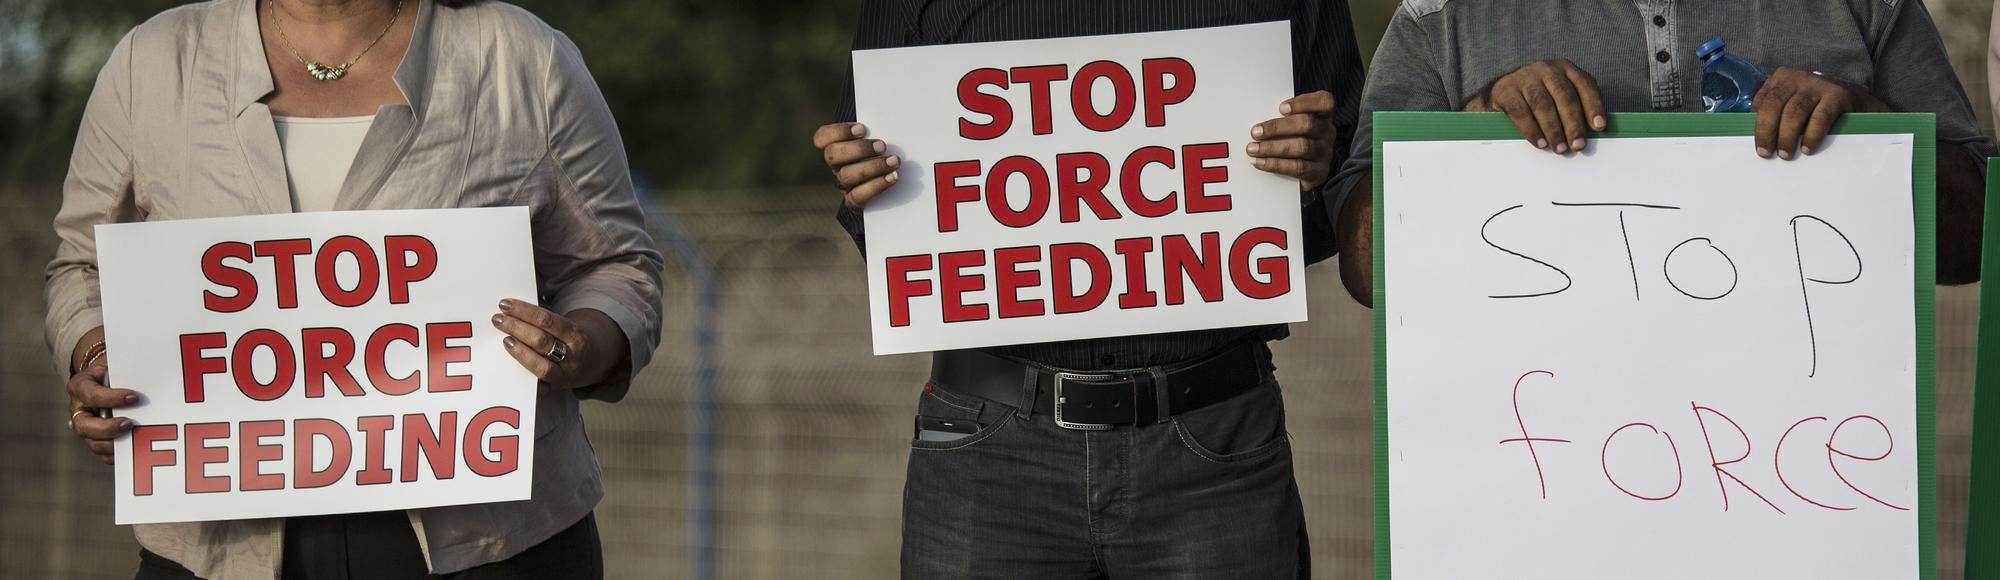 Palestinian Hunger Striker Loses Consciousness, Testing Israel's 'Unethical' Force-Feeding Law